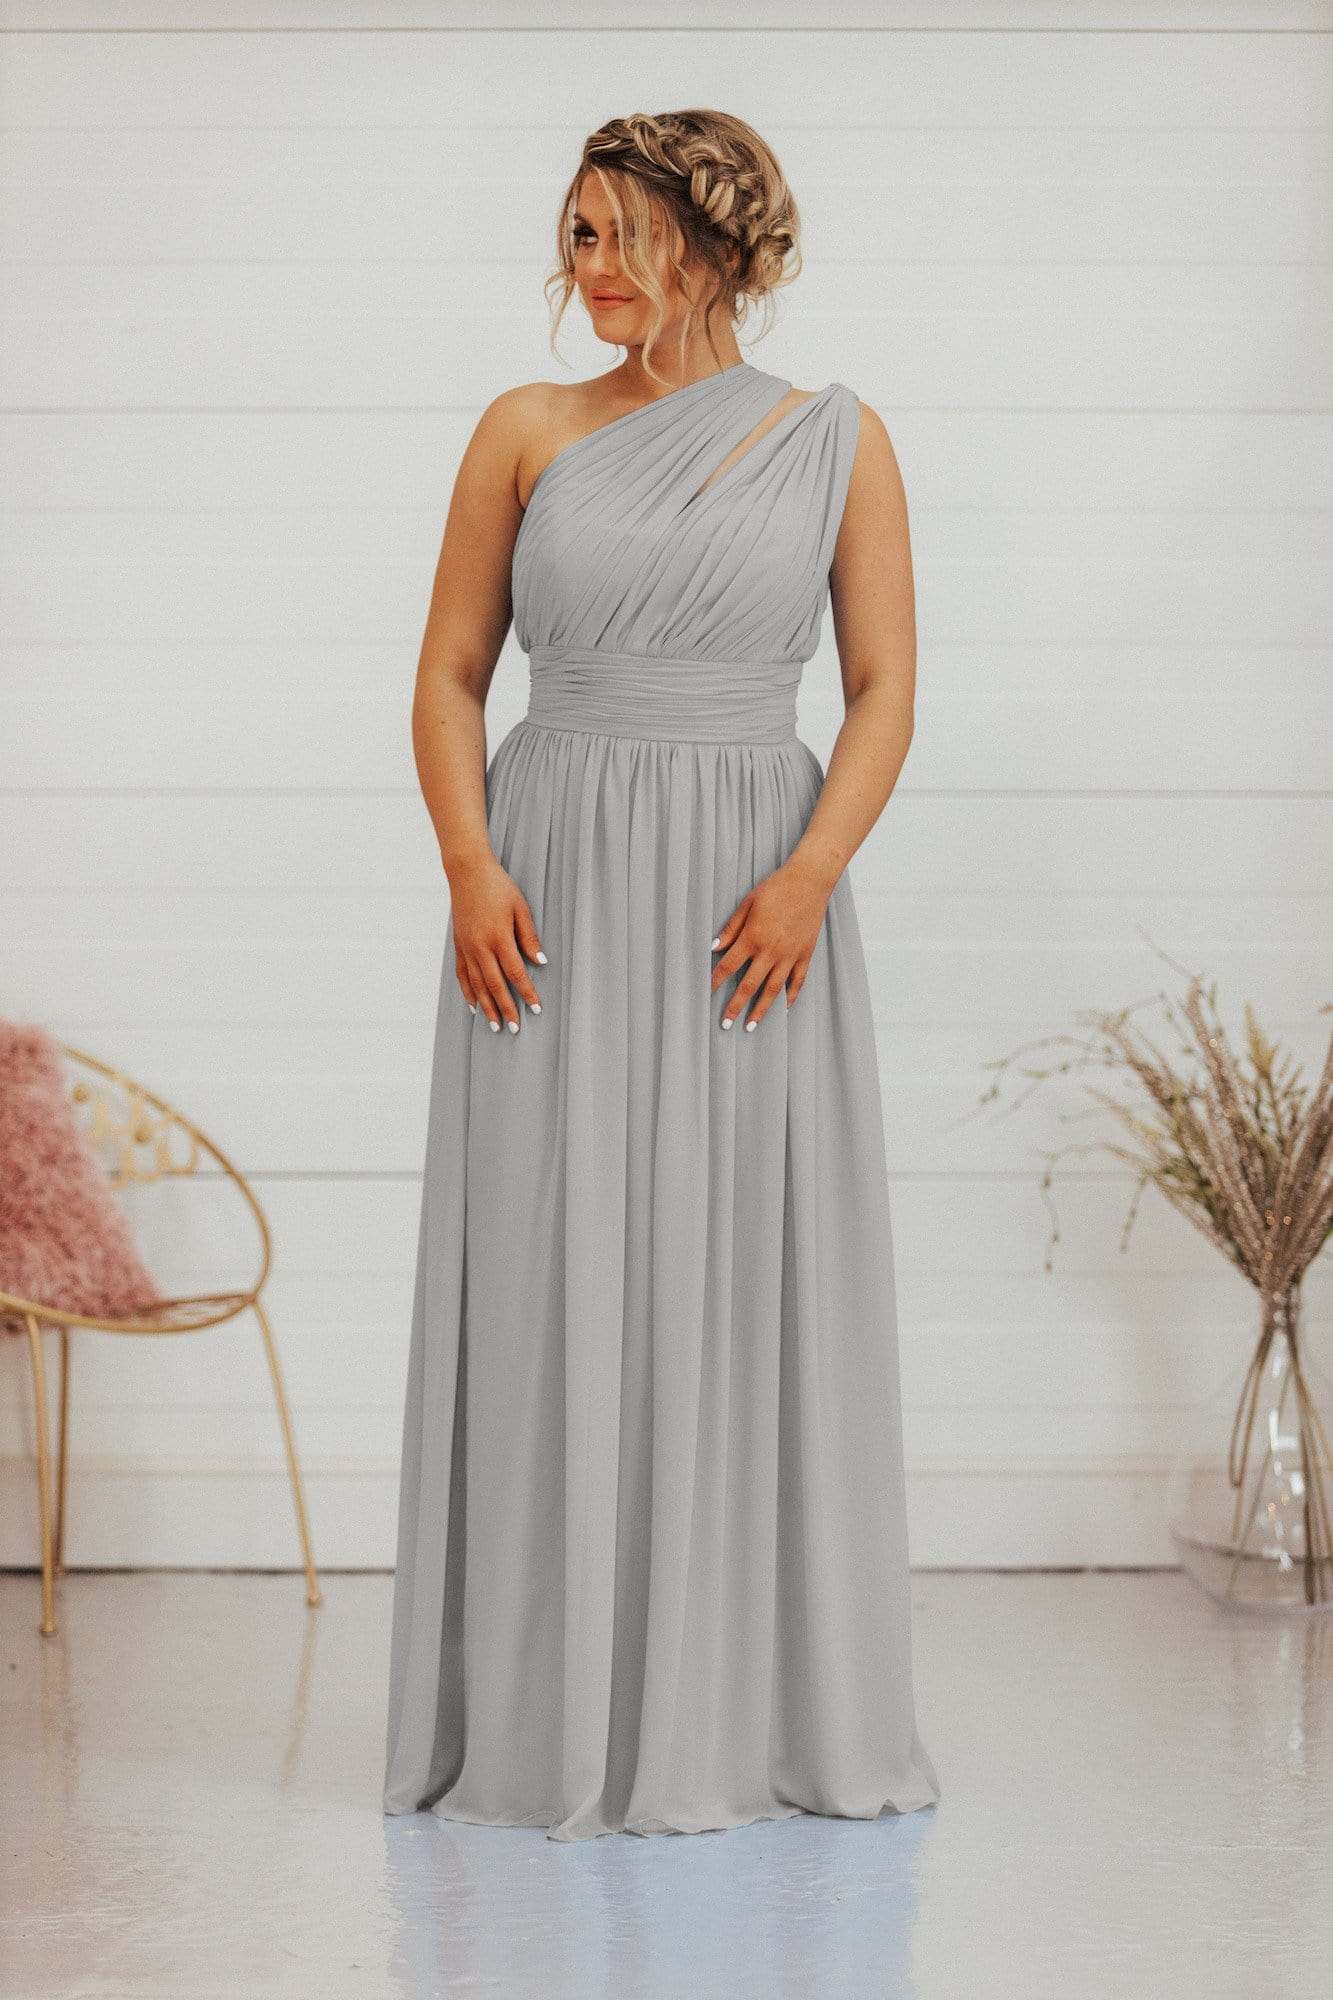 Marisole Dress Online Exclusive - That Special Day Bridal Warehouse